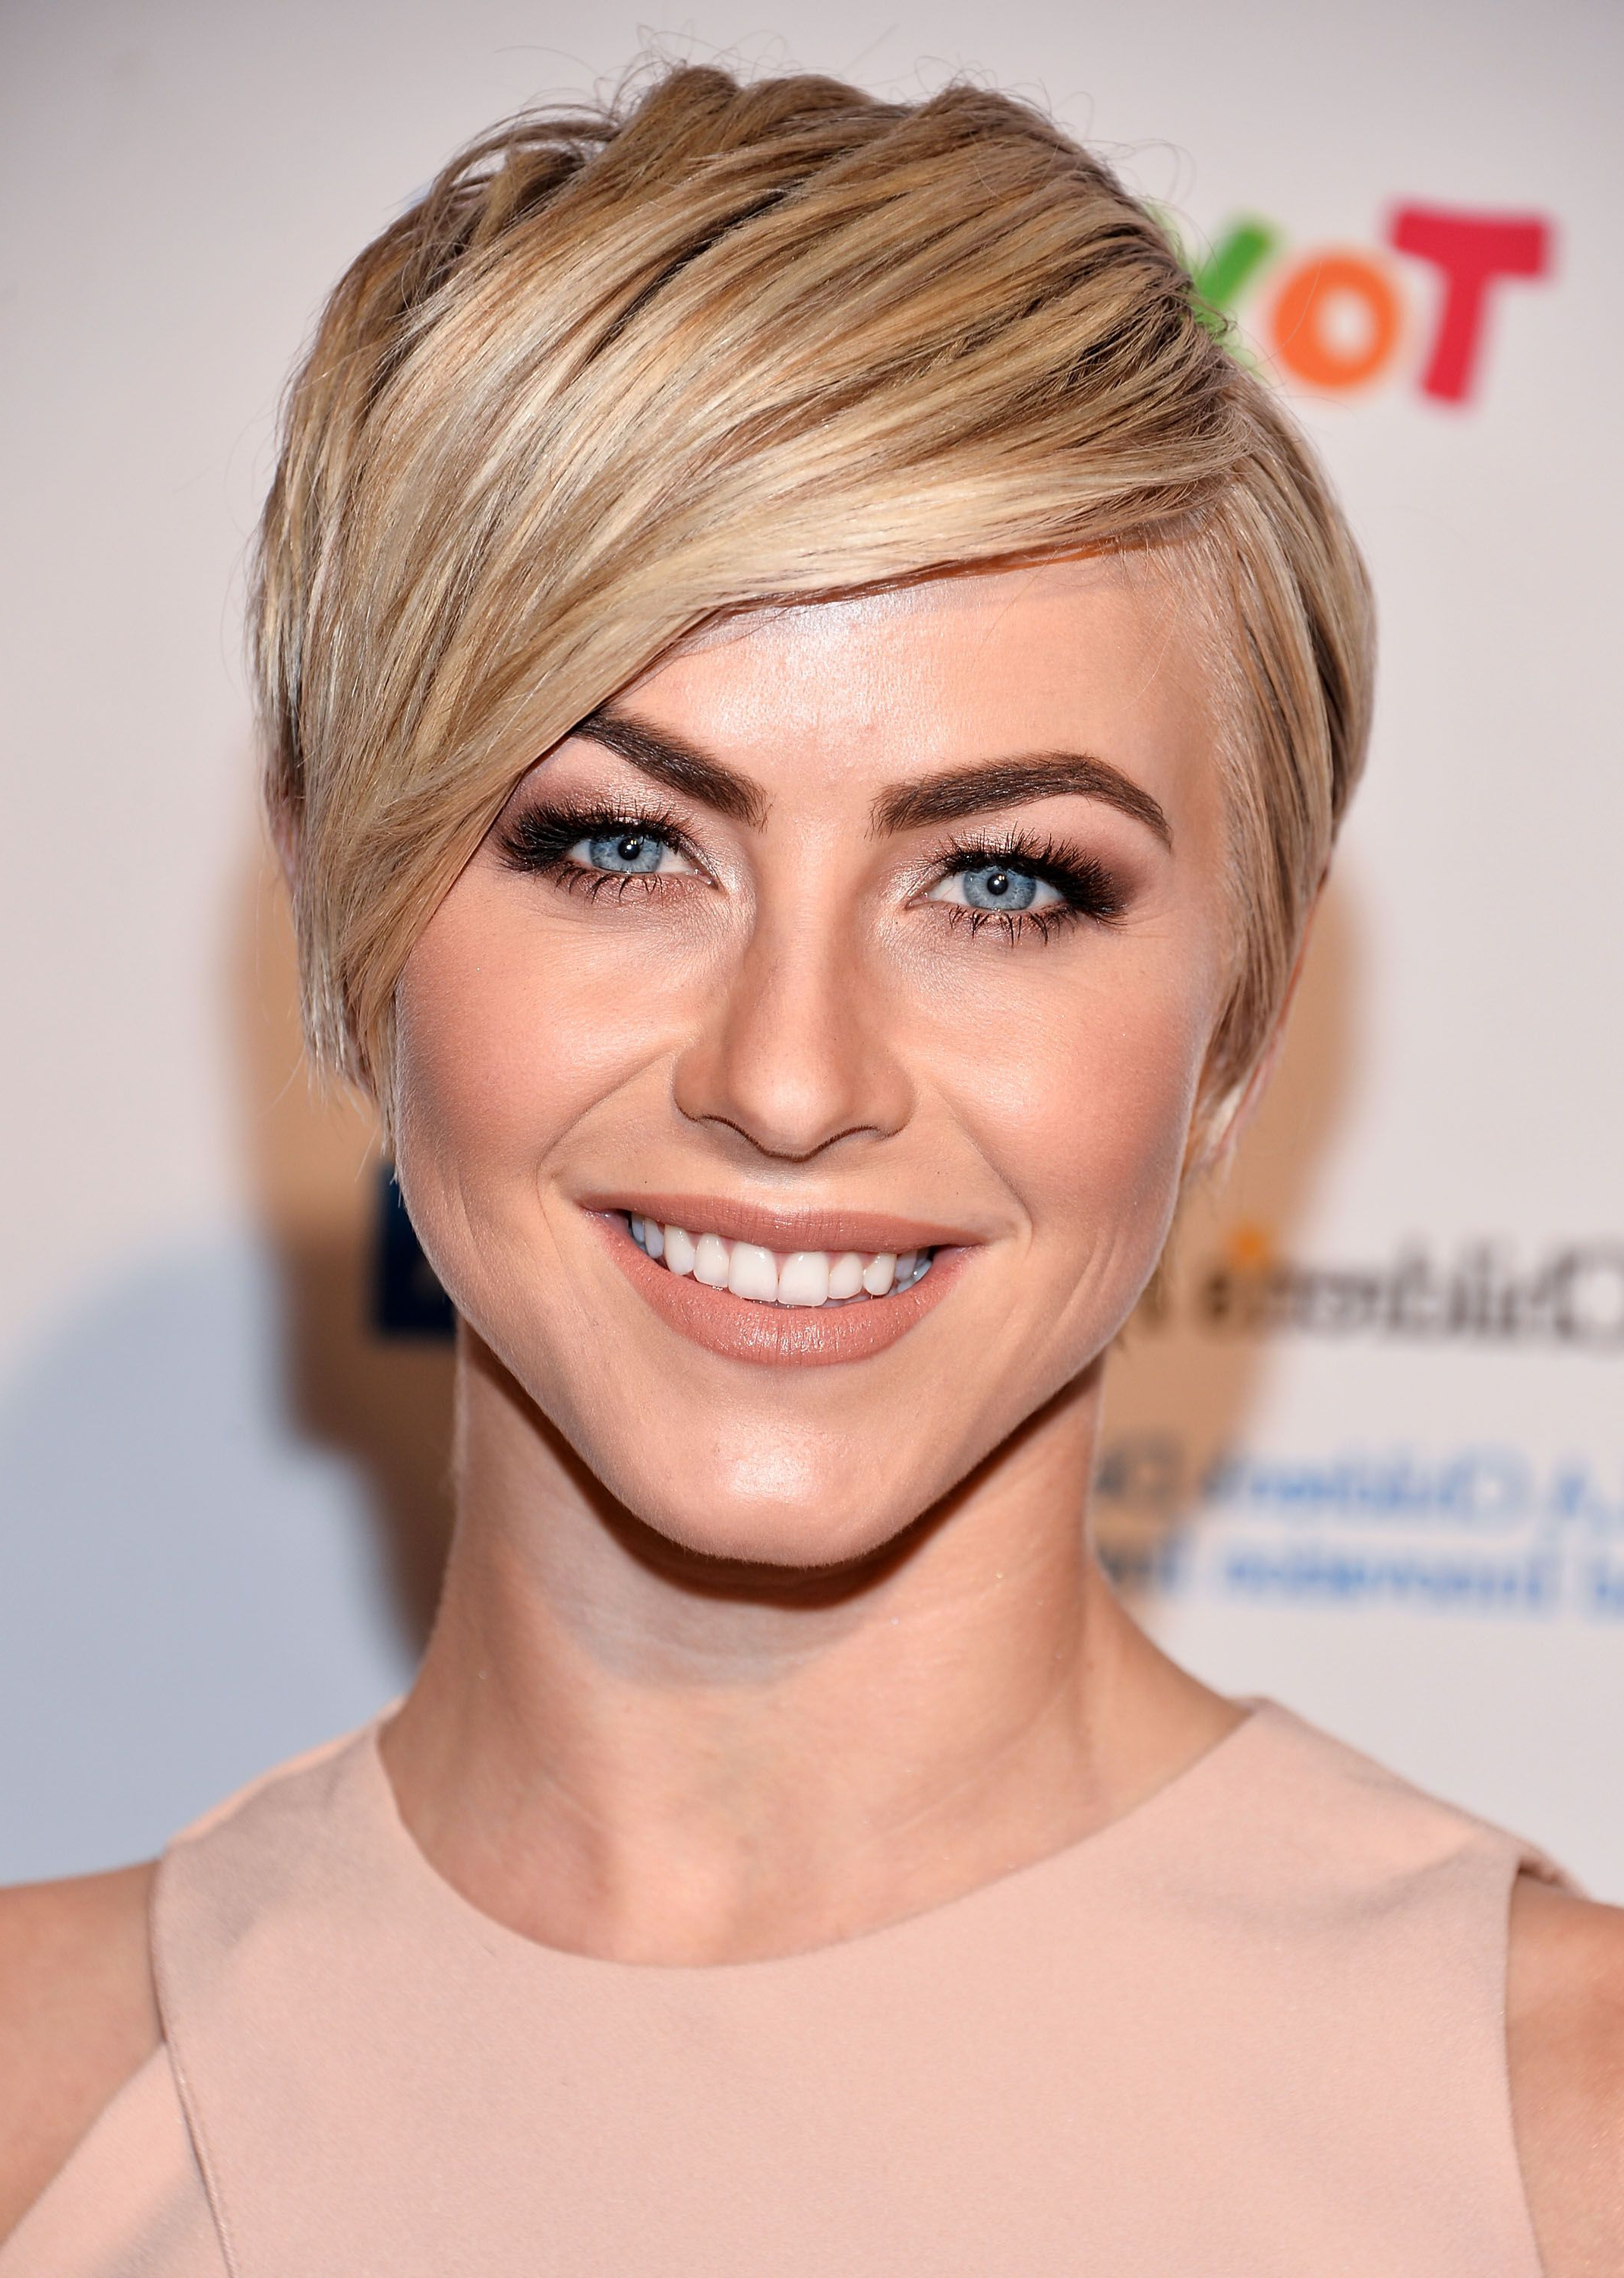 Widely Used Flipped Medium Hairstyles Throughout 40 Best Short Pixie Cut Hairstyles 2018 – Cute Pixie Haircuts For Women (View 19 of 20)